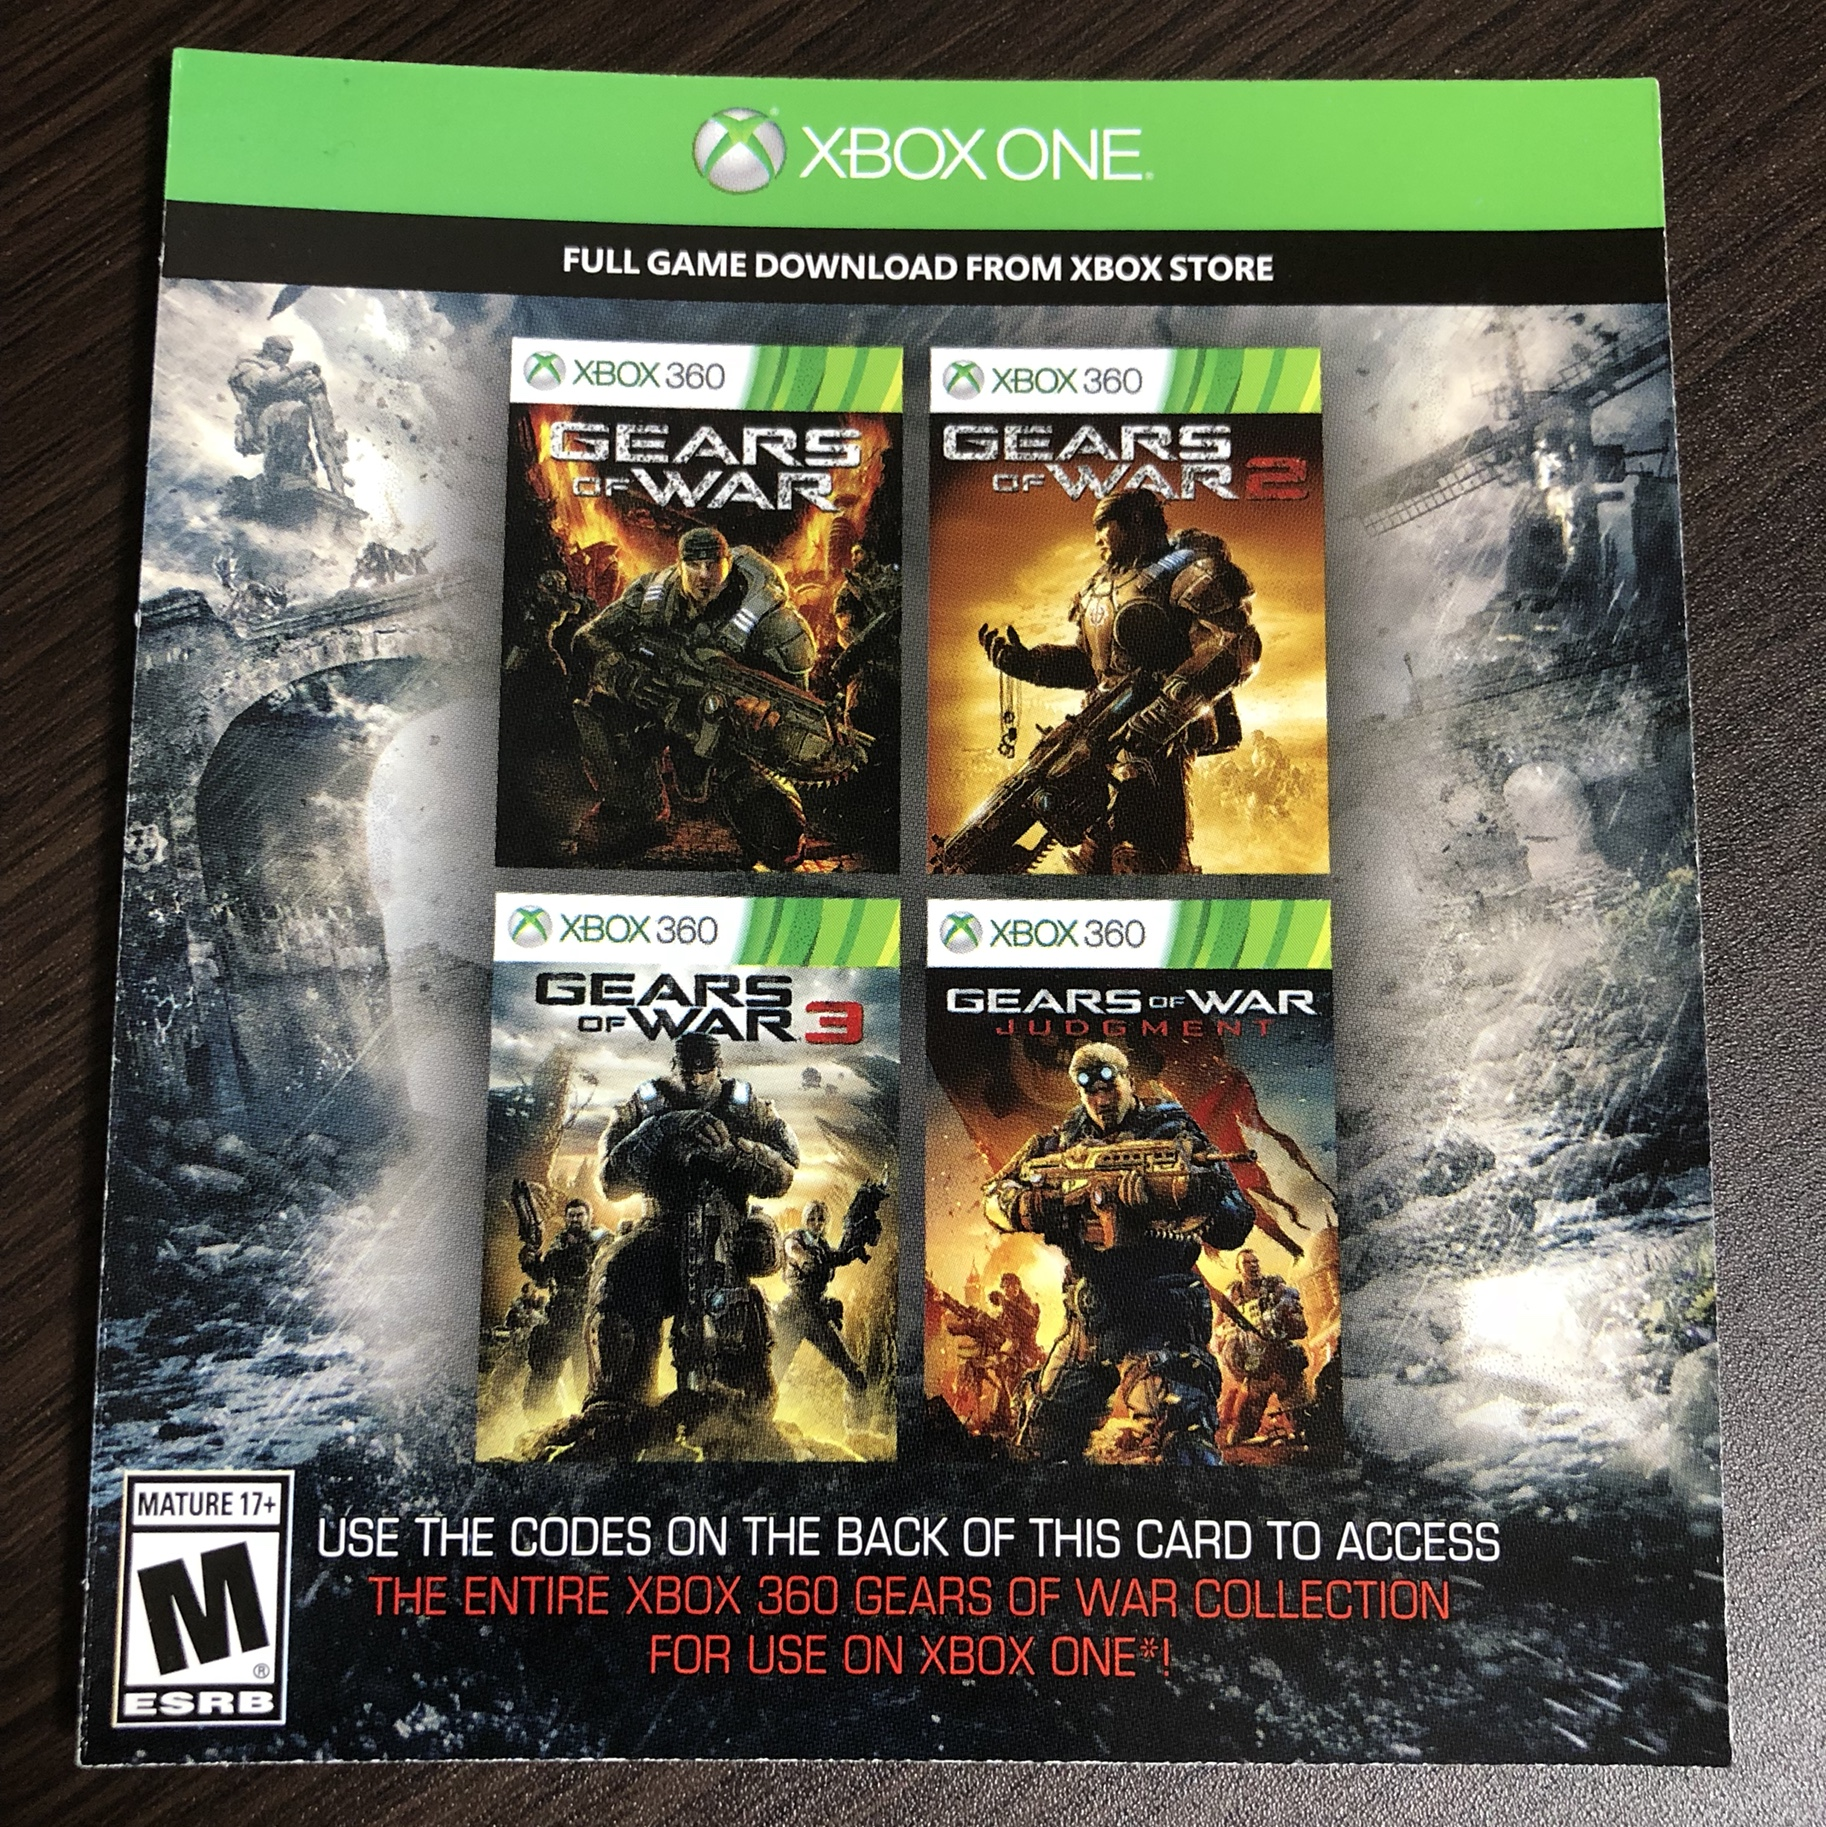 xbox 360 game download codes